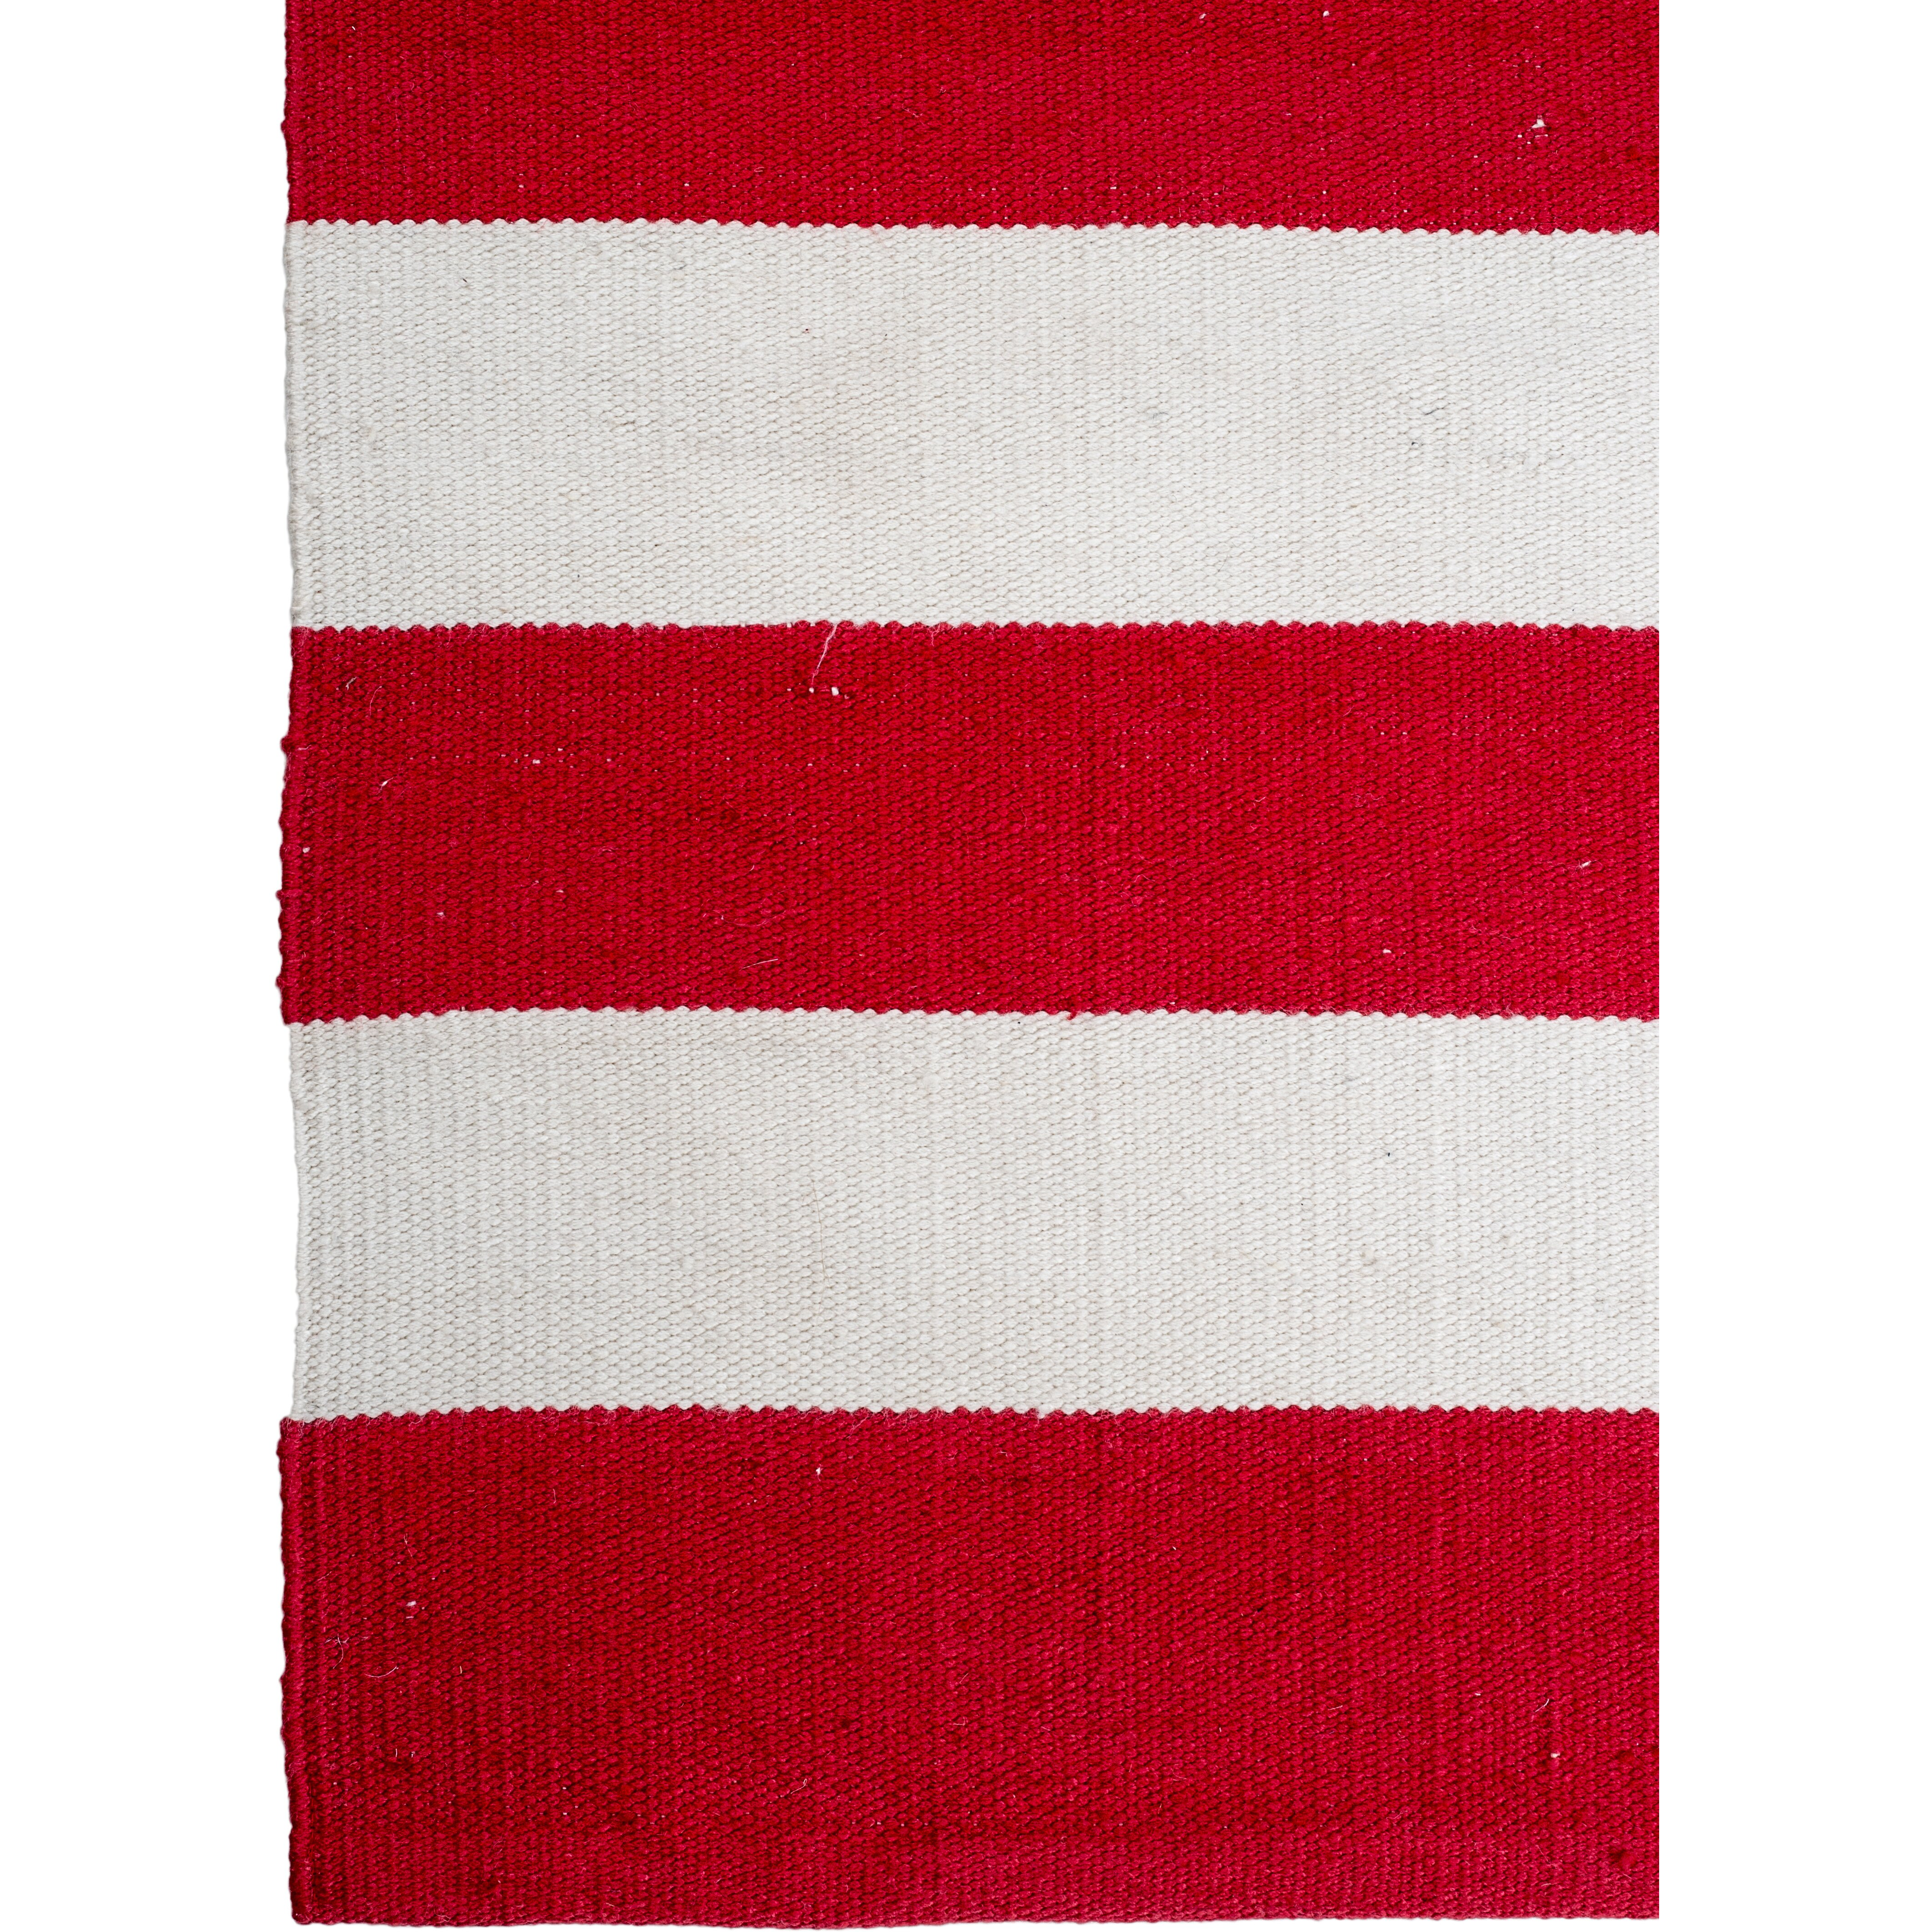 Fab habitat nantucket striped red white indoor outdoor for Red and white striped area rug